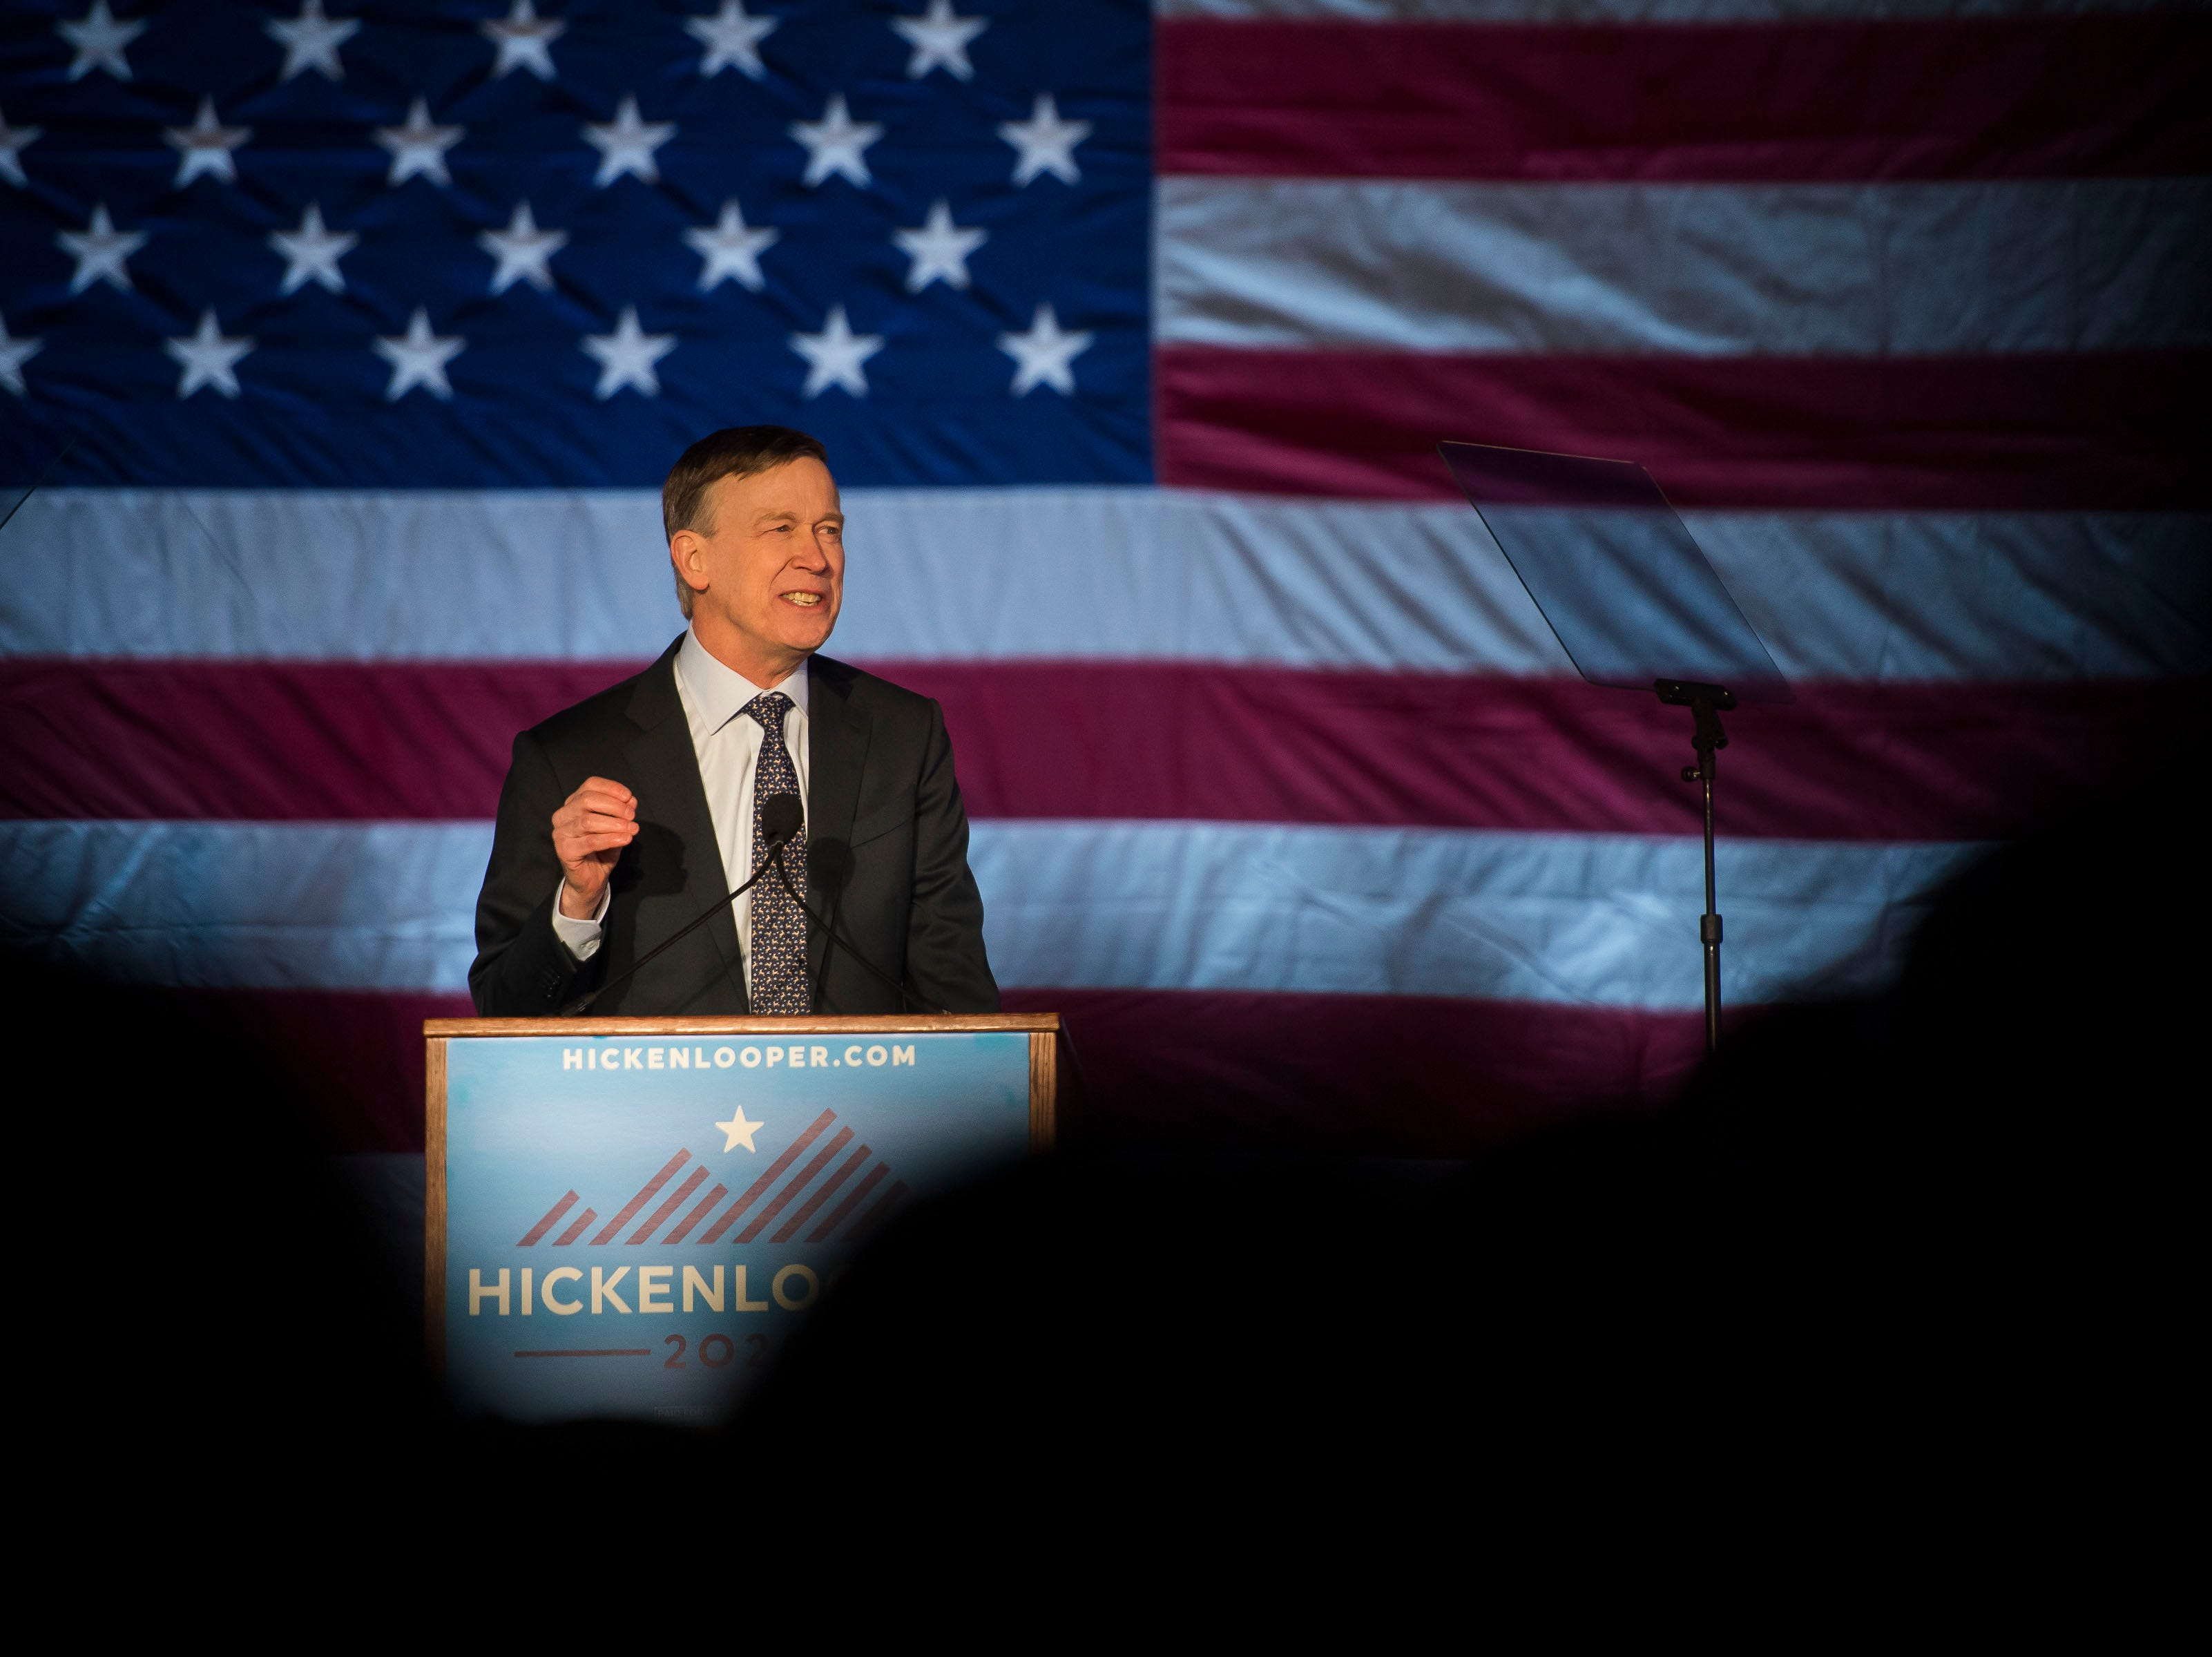 Former Colorado governor John Hickenlooper speaks during his presidential campaign kick-off rally on Thursday, March 7, 2019, at the Greek Ampitheatre in Civic Center Park in Denver, Colo.